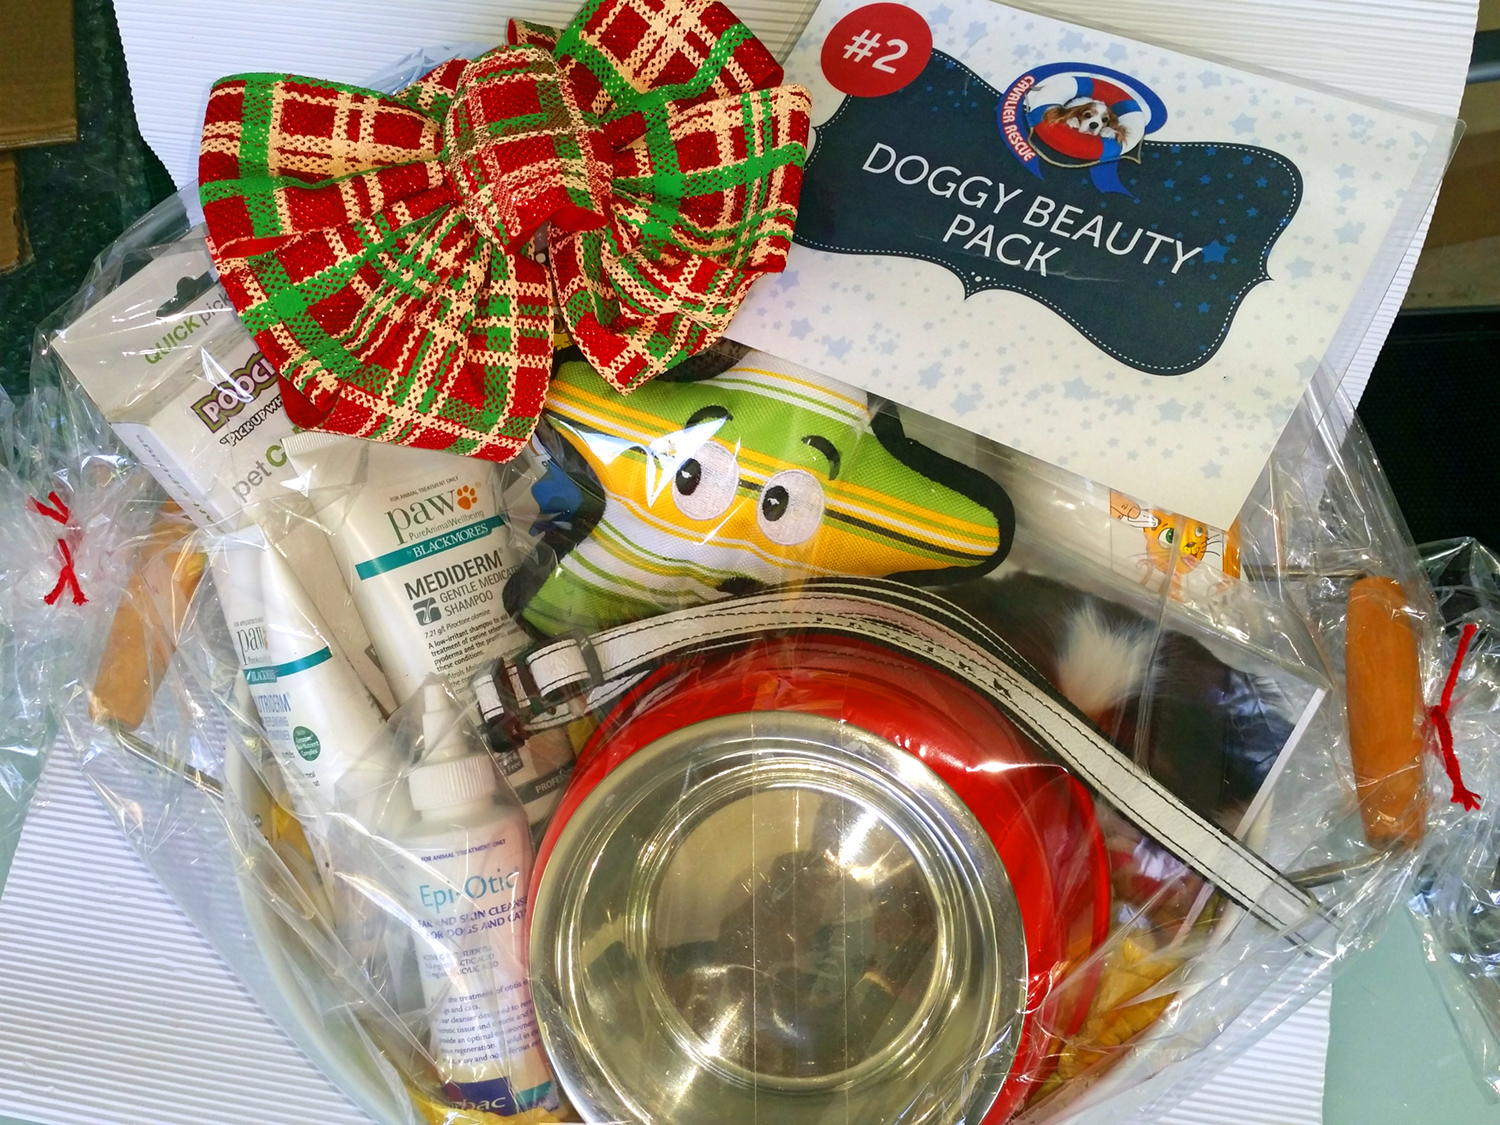 Cavalier Rescue Qld - Christmas Raffle 2016 - Doggy Beauty Prize Pack